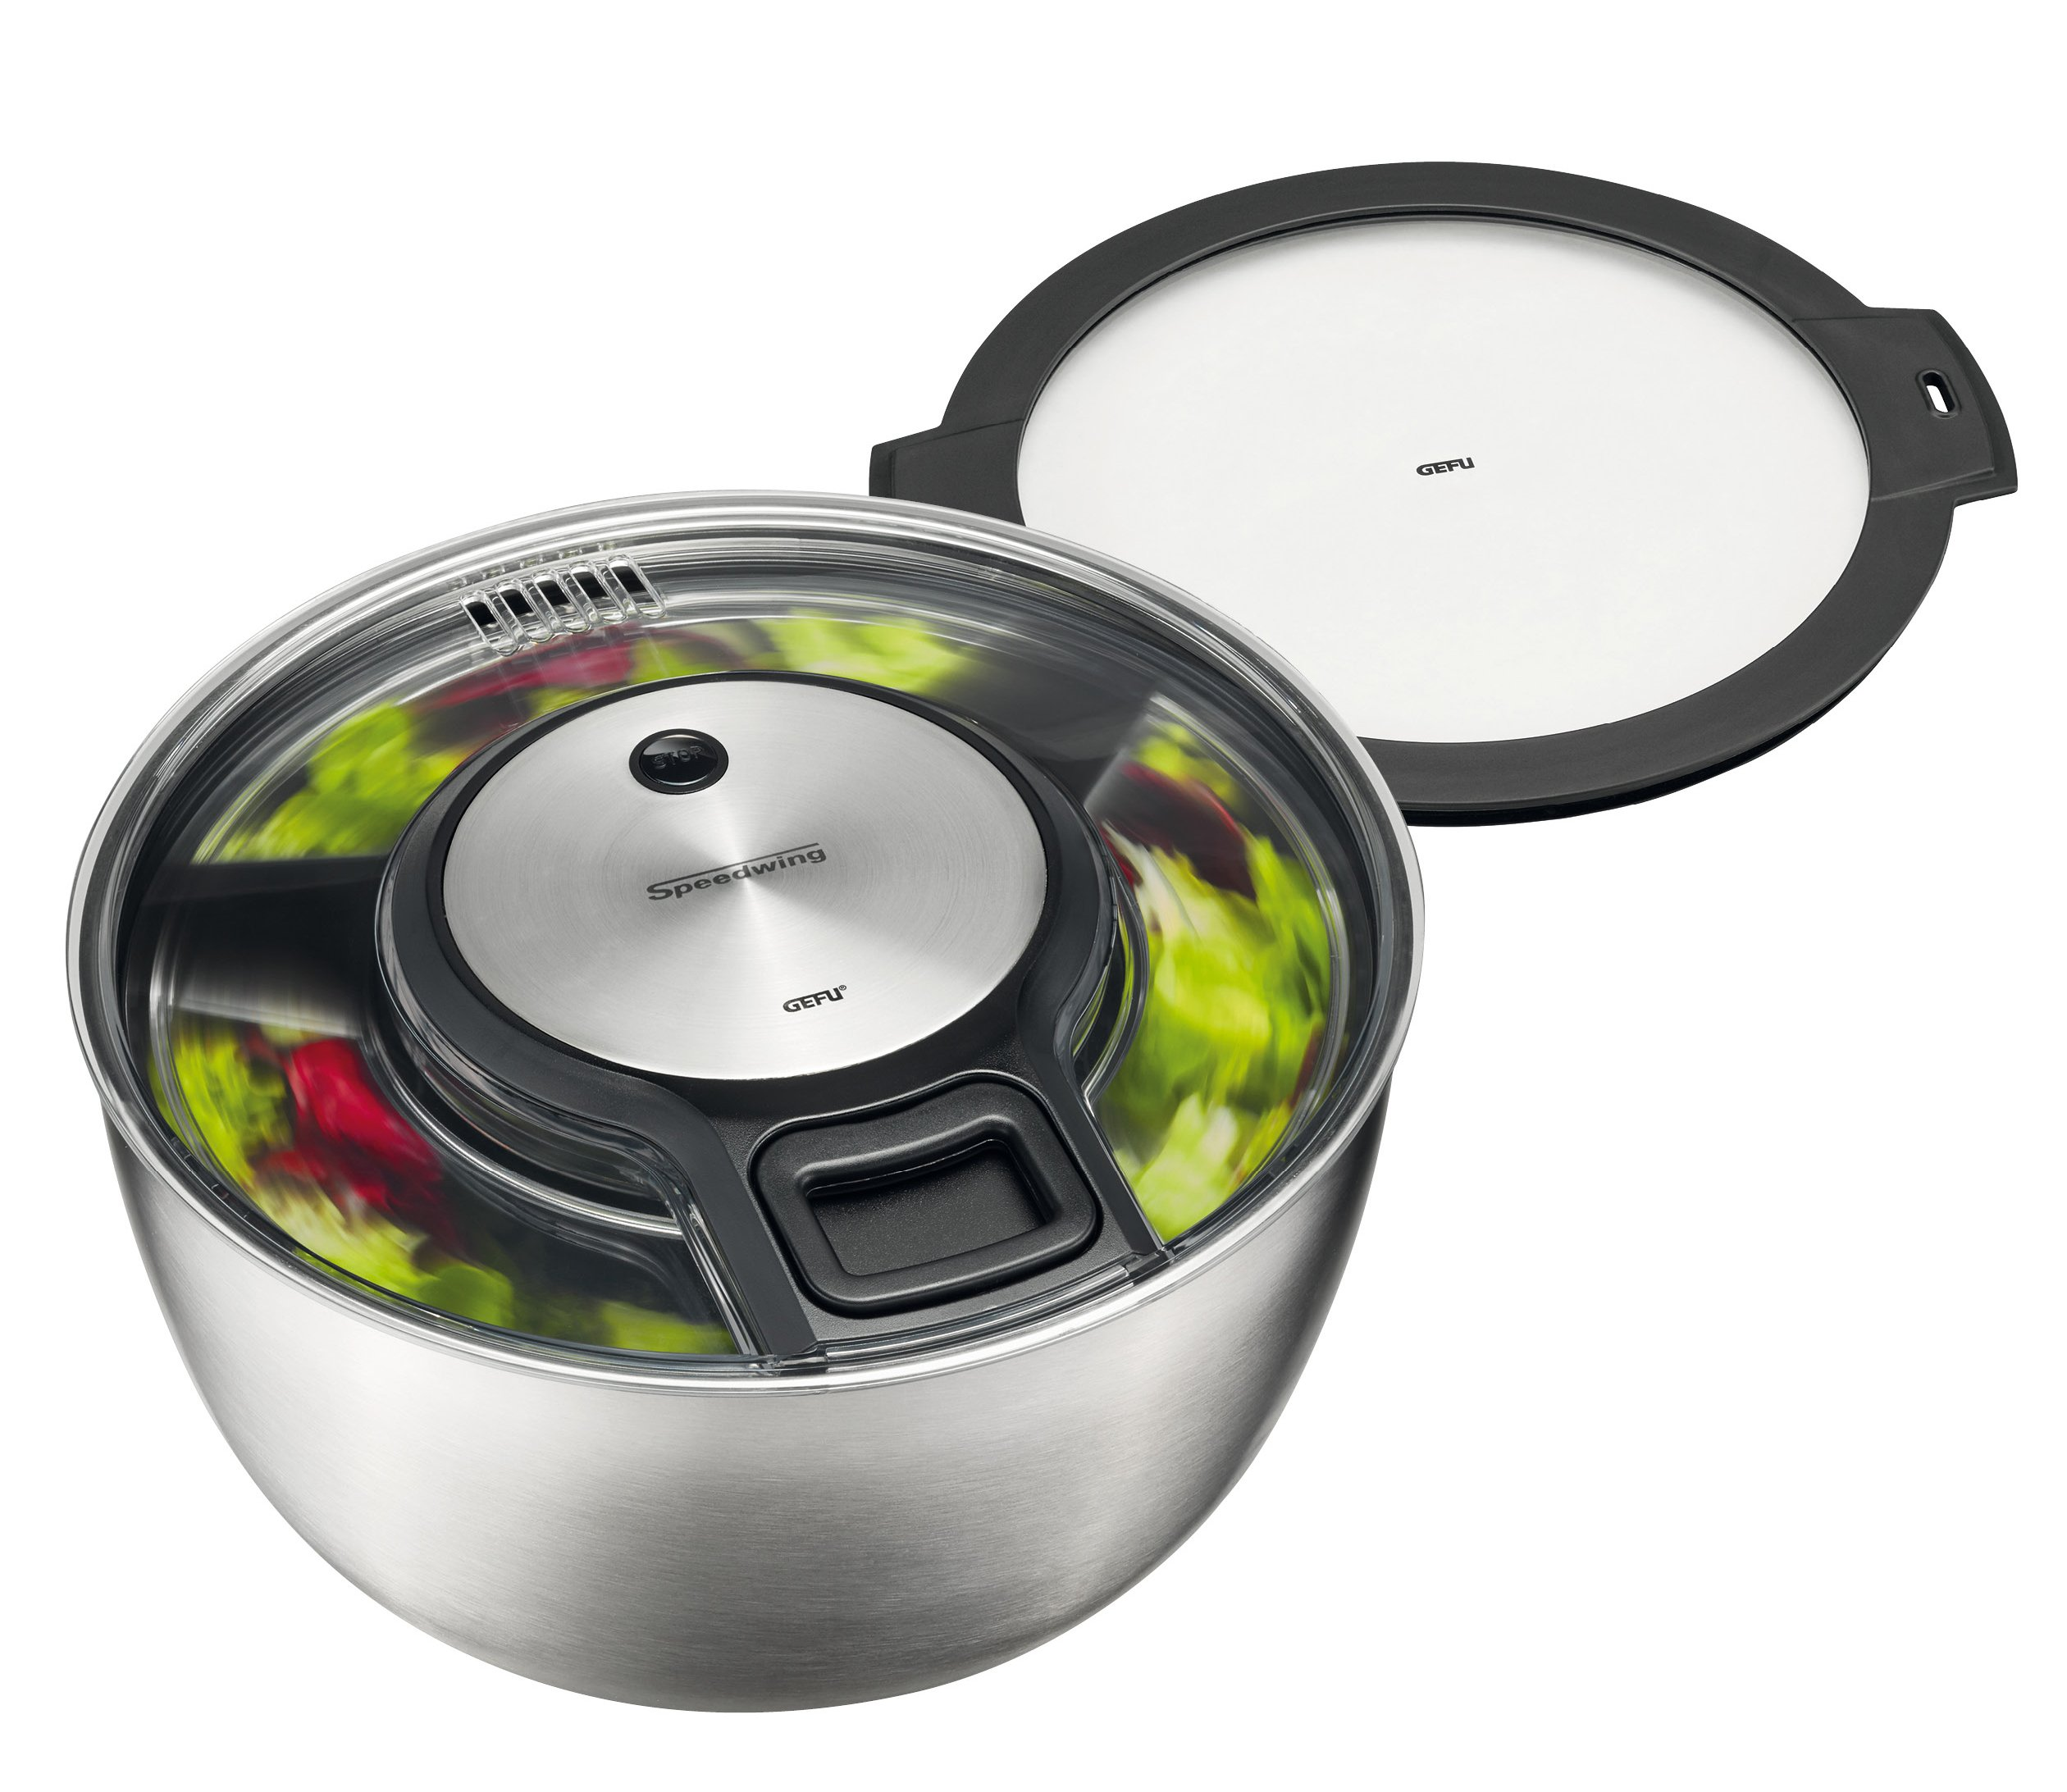 GEFU Limited Edition Salad Spinner SPEEDWING with stay fresh lid